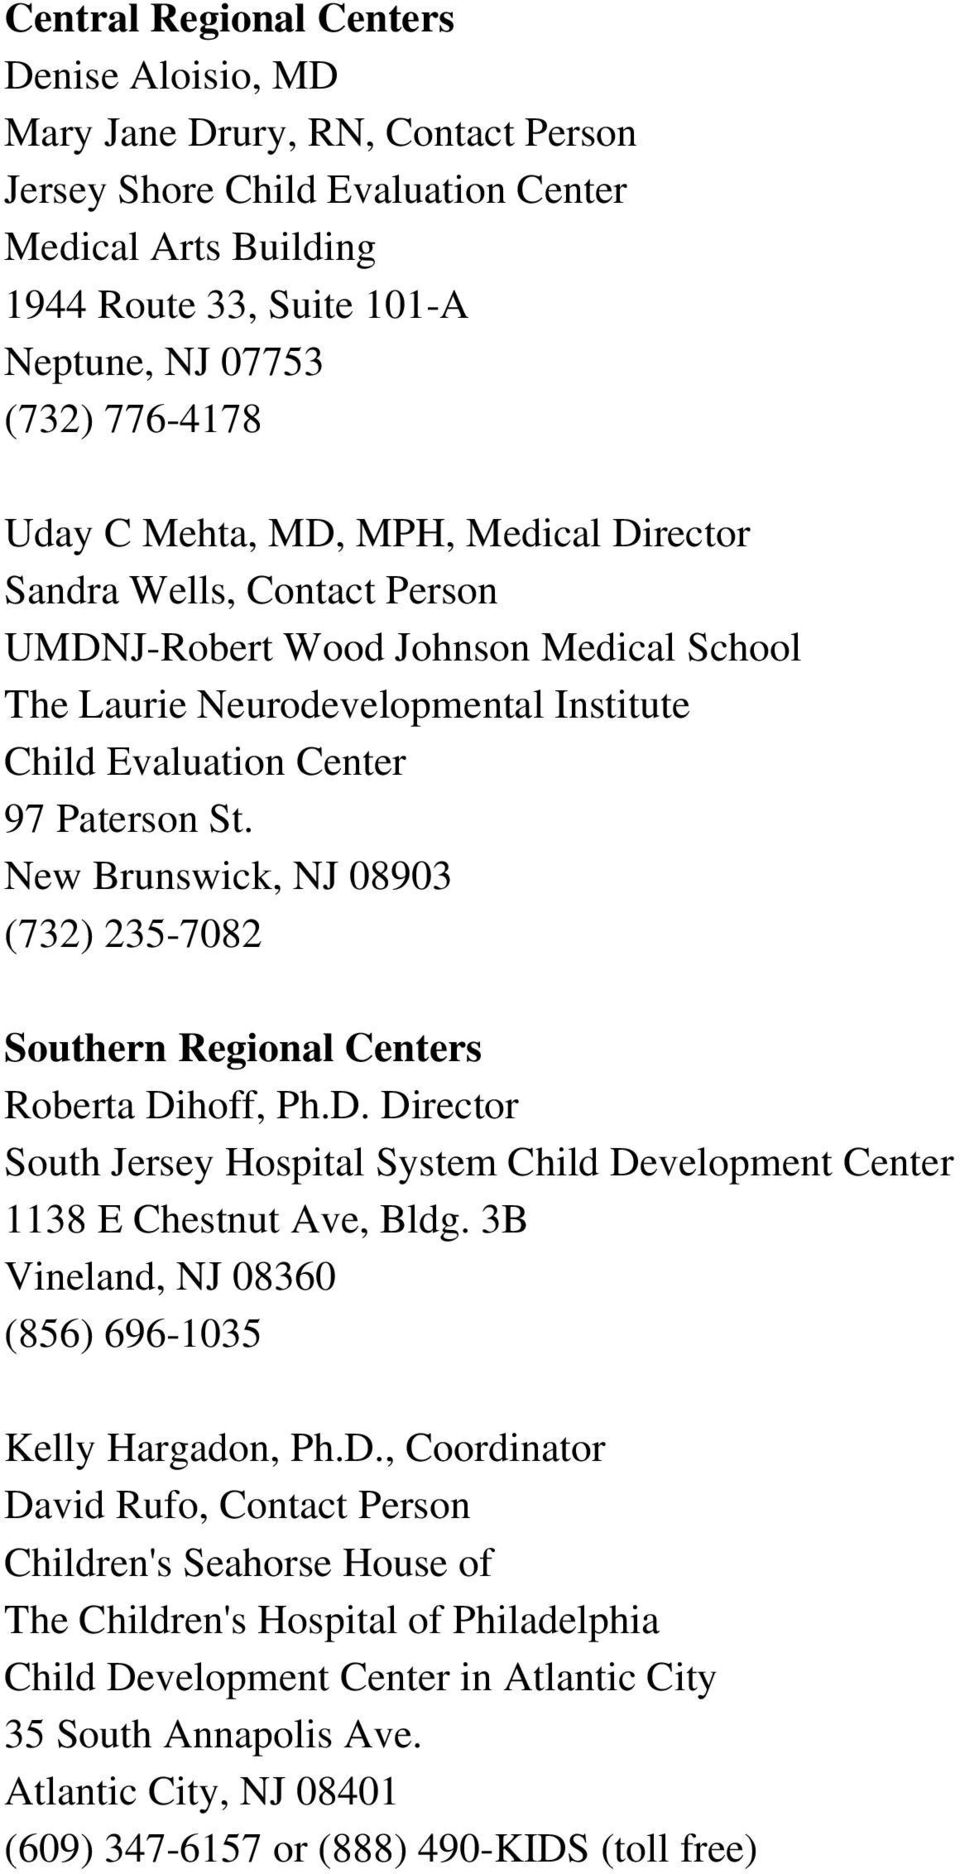 New Brunswick, NJ 08903 (732) 235-7082 Southern Regional Centers Roberta Dihoff, Ph.D. Director South Jersey Hospital System Child Development Center 1138 E Chestnut Ave, Bldg.